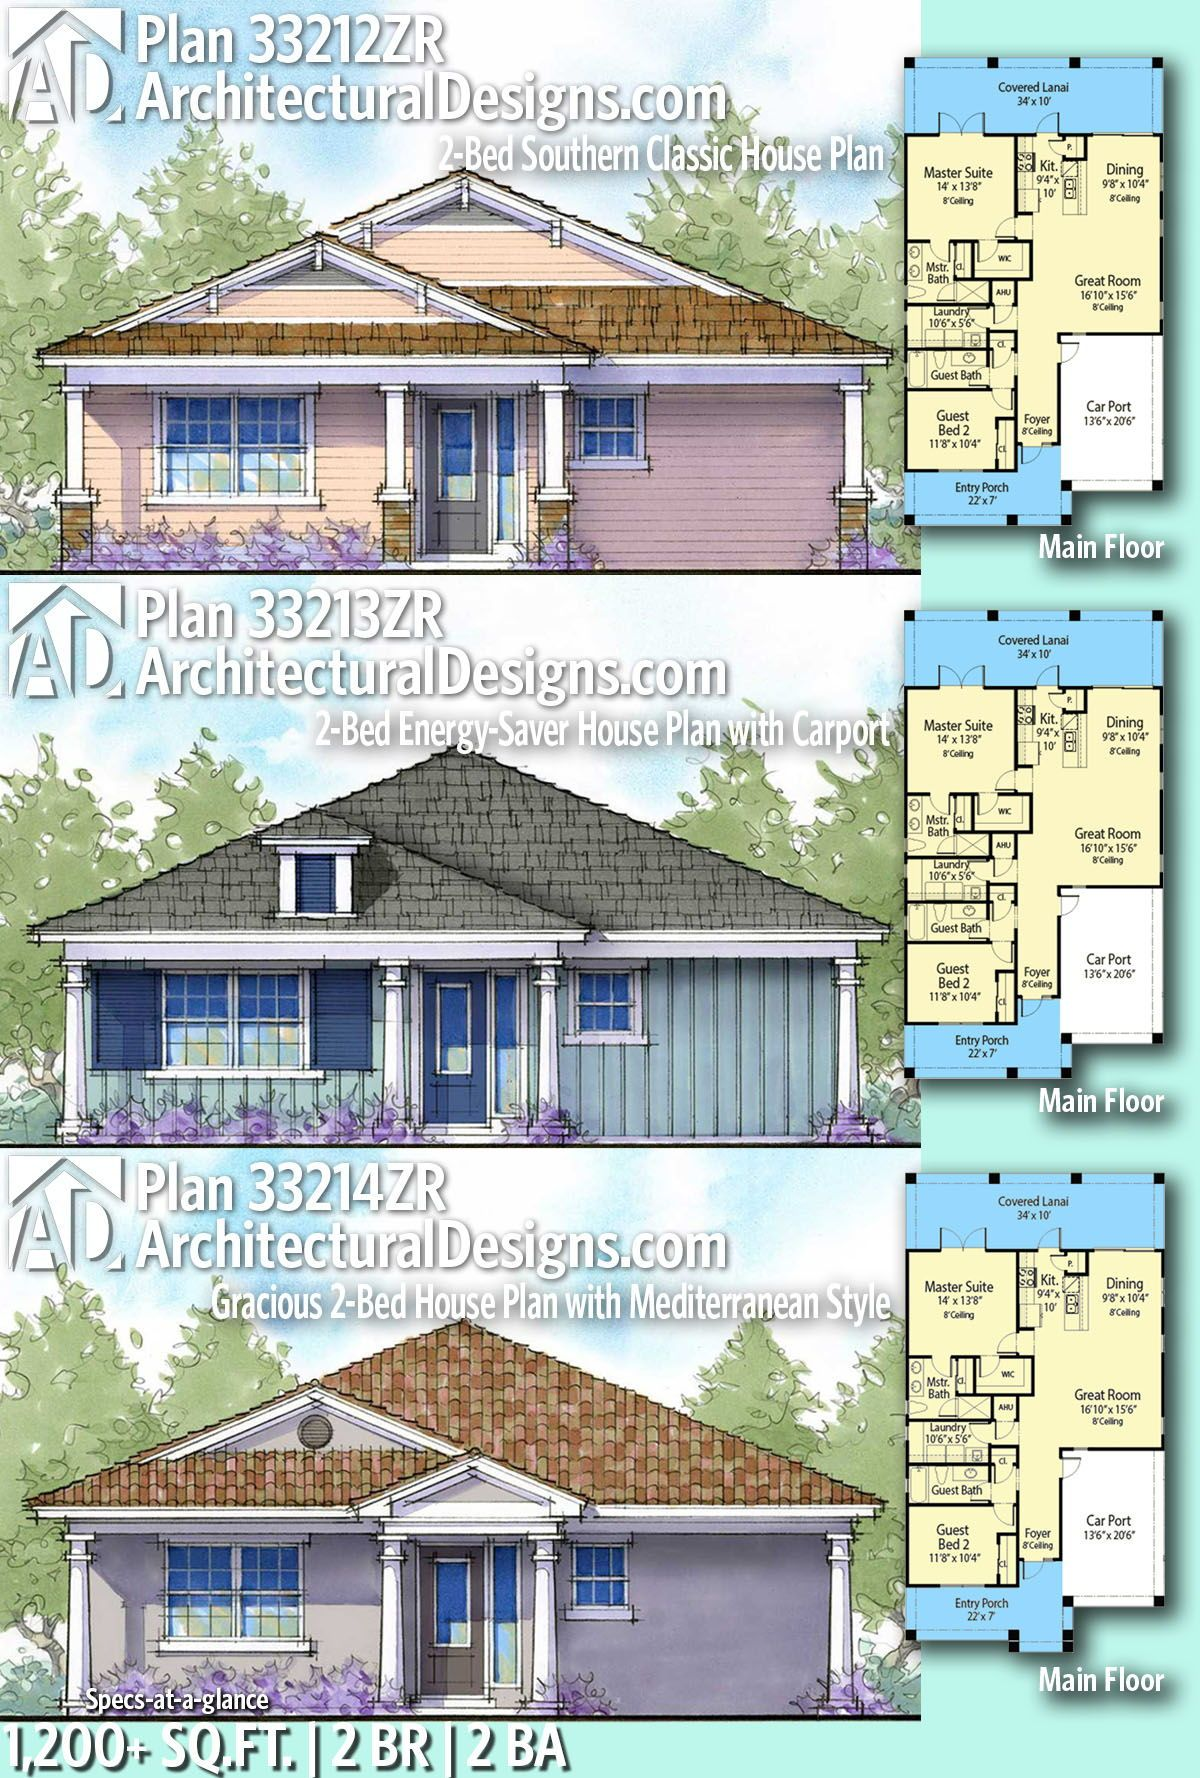 Plan 33213zr 2 Bed Energy Saver House Plan With Carport House Plans Country Style House Plans Classic House